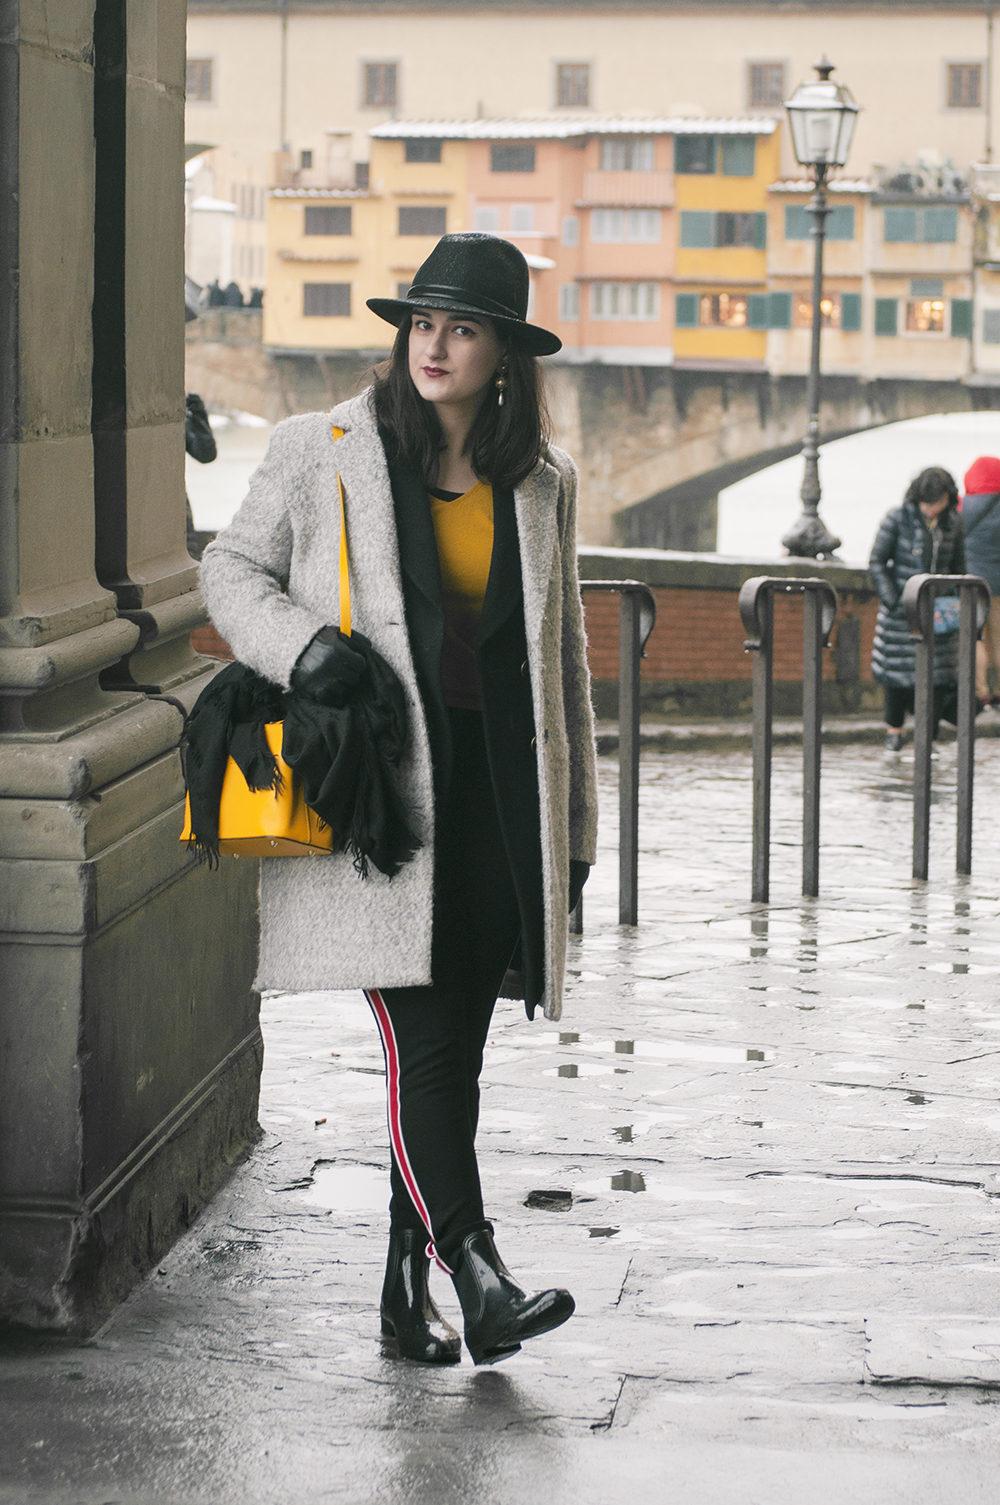 somethingfashion blogger firenze collaboration outfit casual mustard top jersey shein vest firenze snow pontevecchio_0705